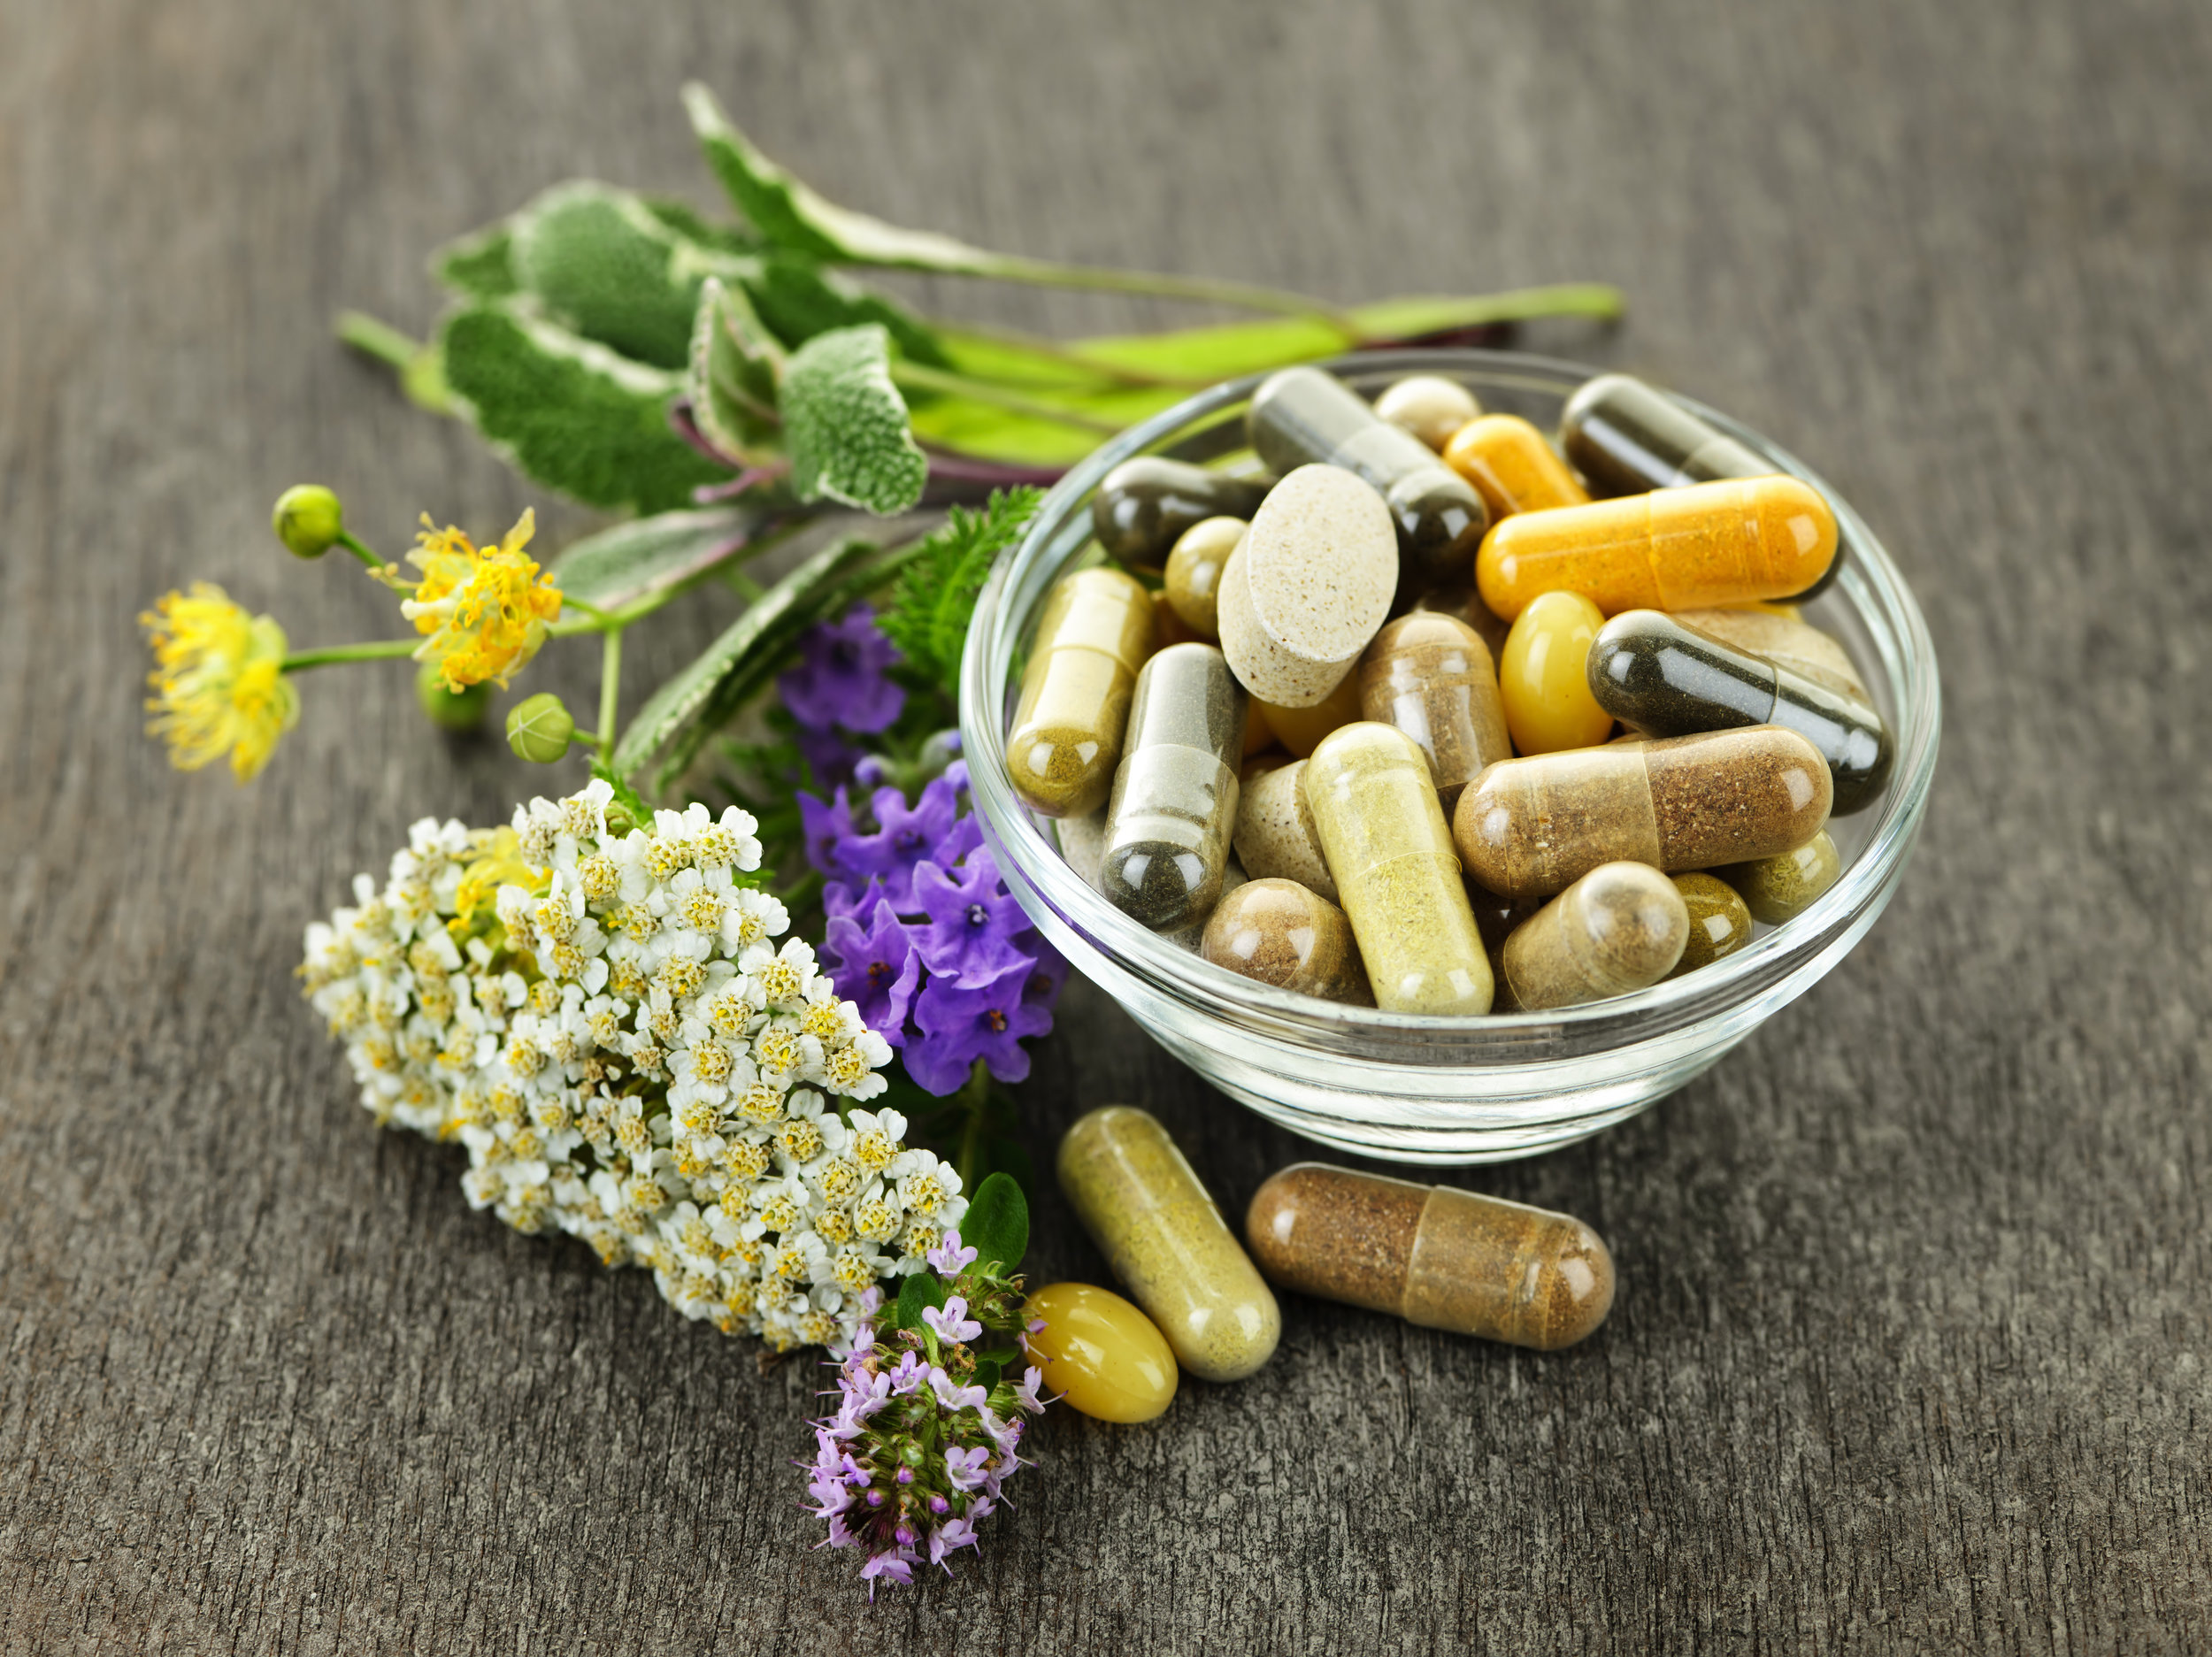 Should You Take Nutritional Supplements?